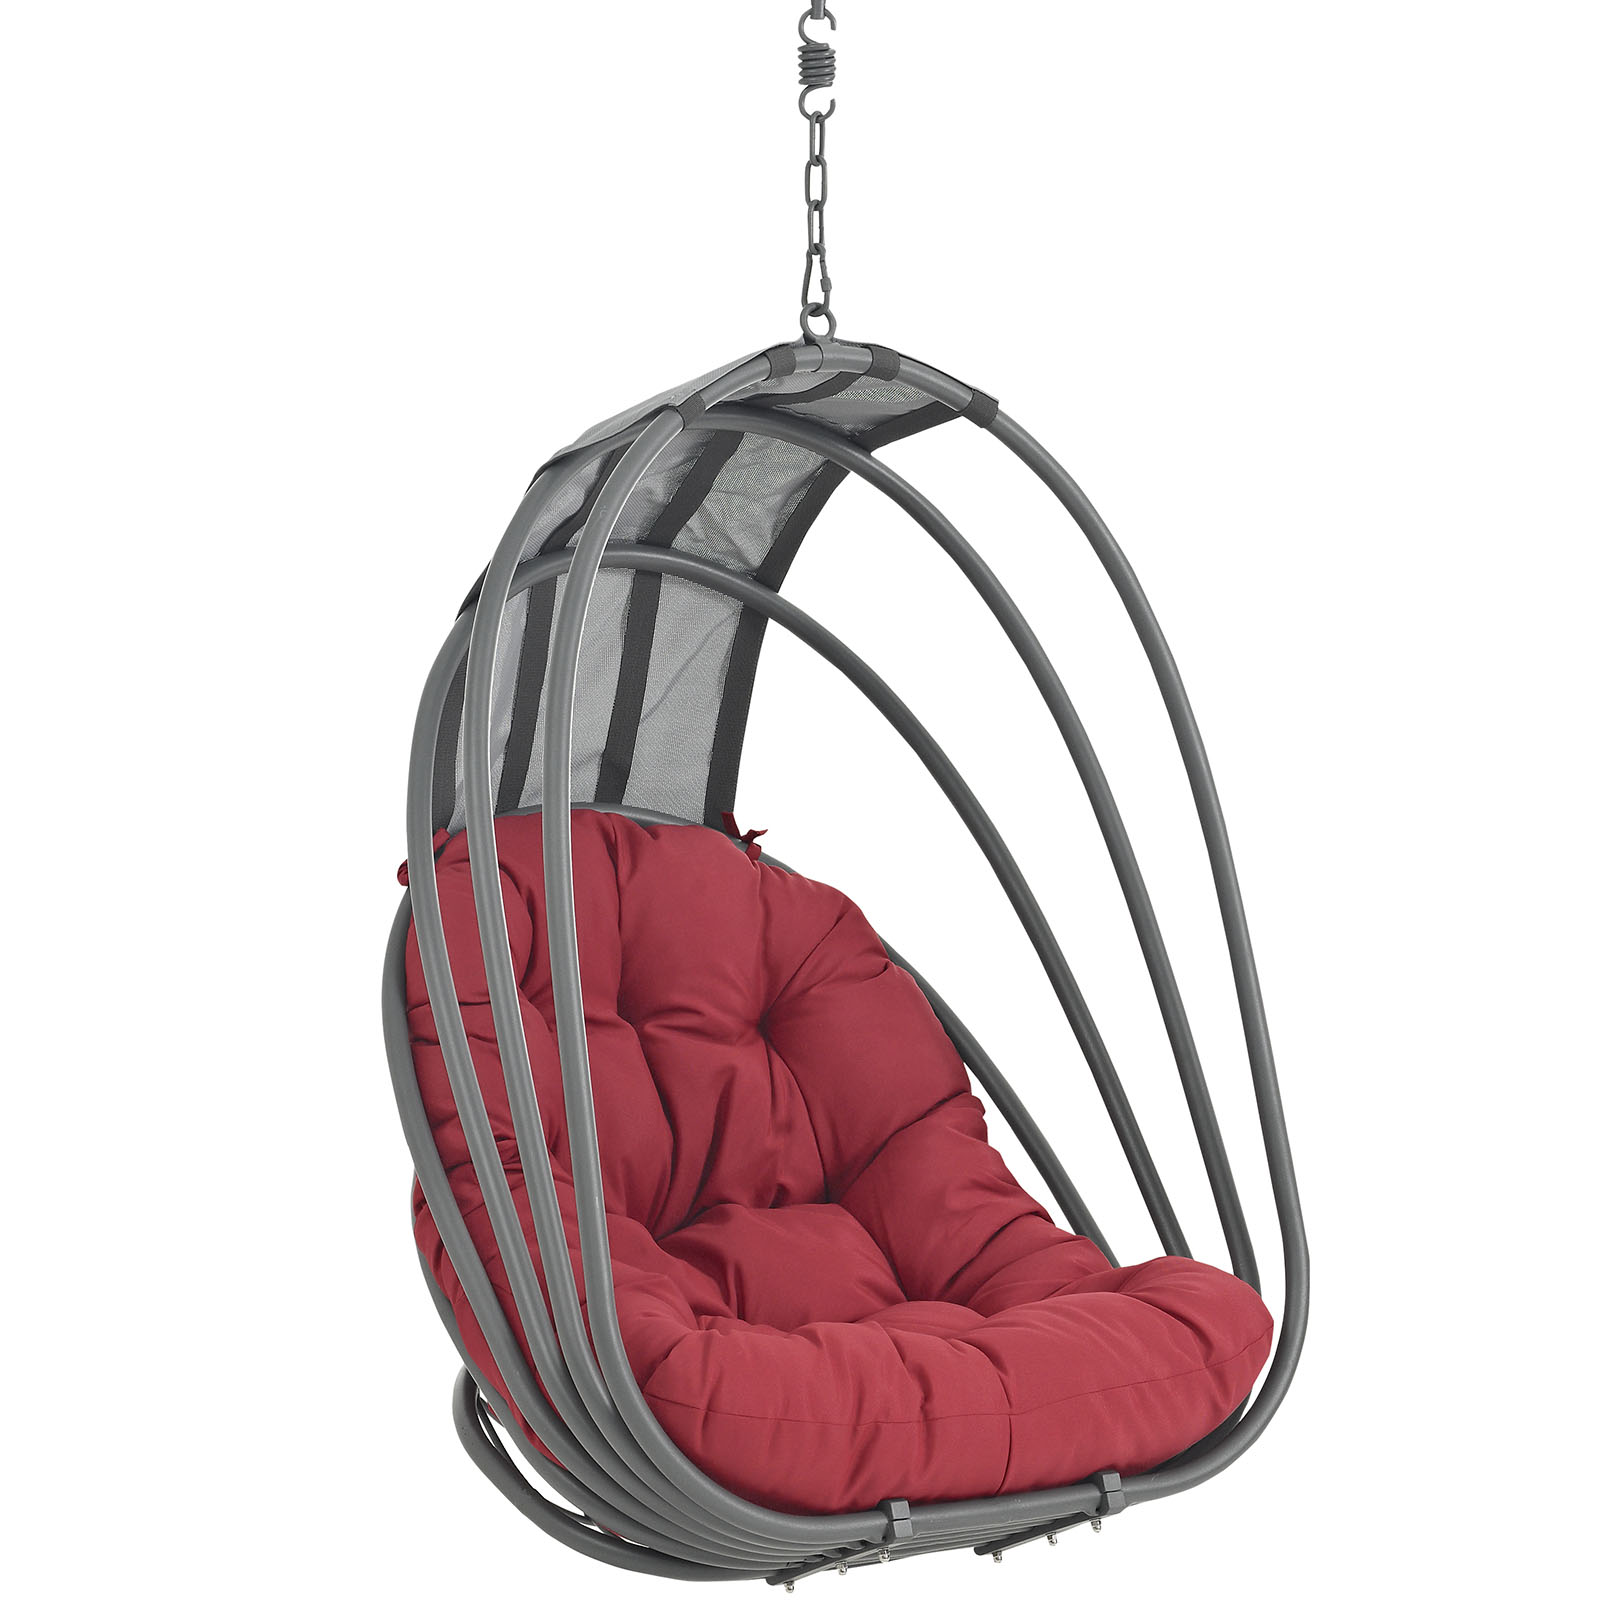 Whisk Outdoor Patio Swing Chair Without Stand - Orange | eBay